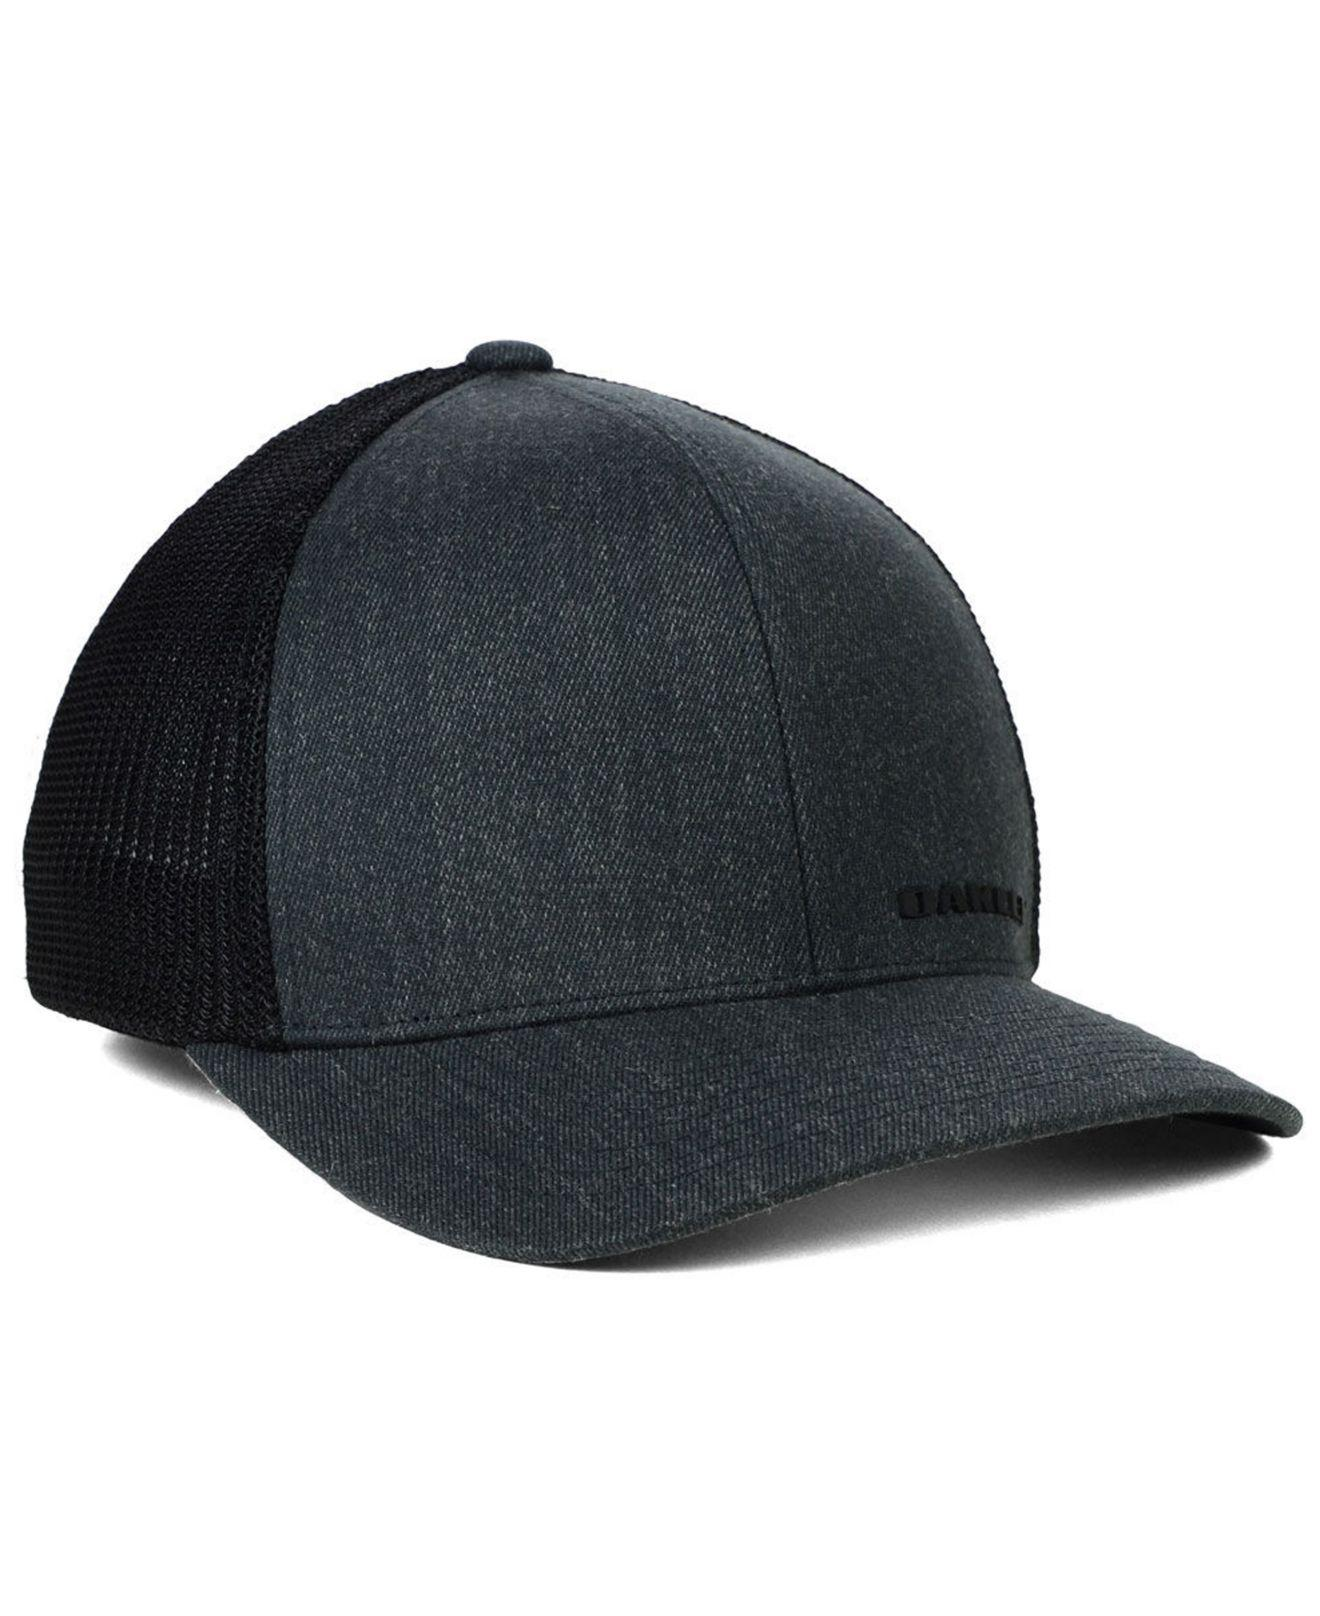 Lyst - Oakley Indy Hat in Black for Men a85bc86d6b1f